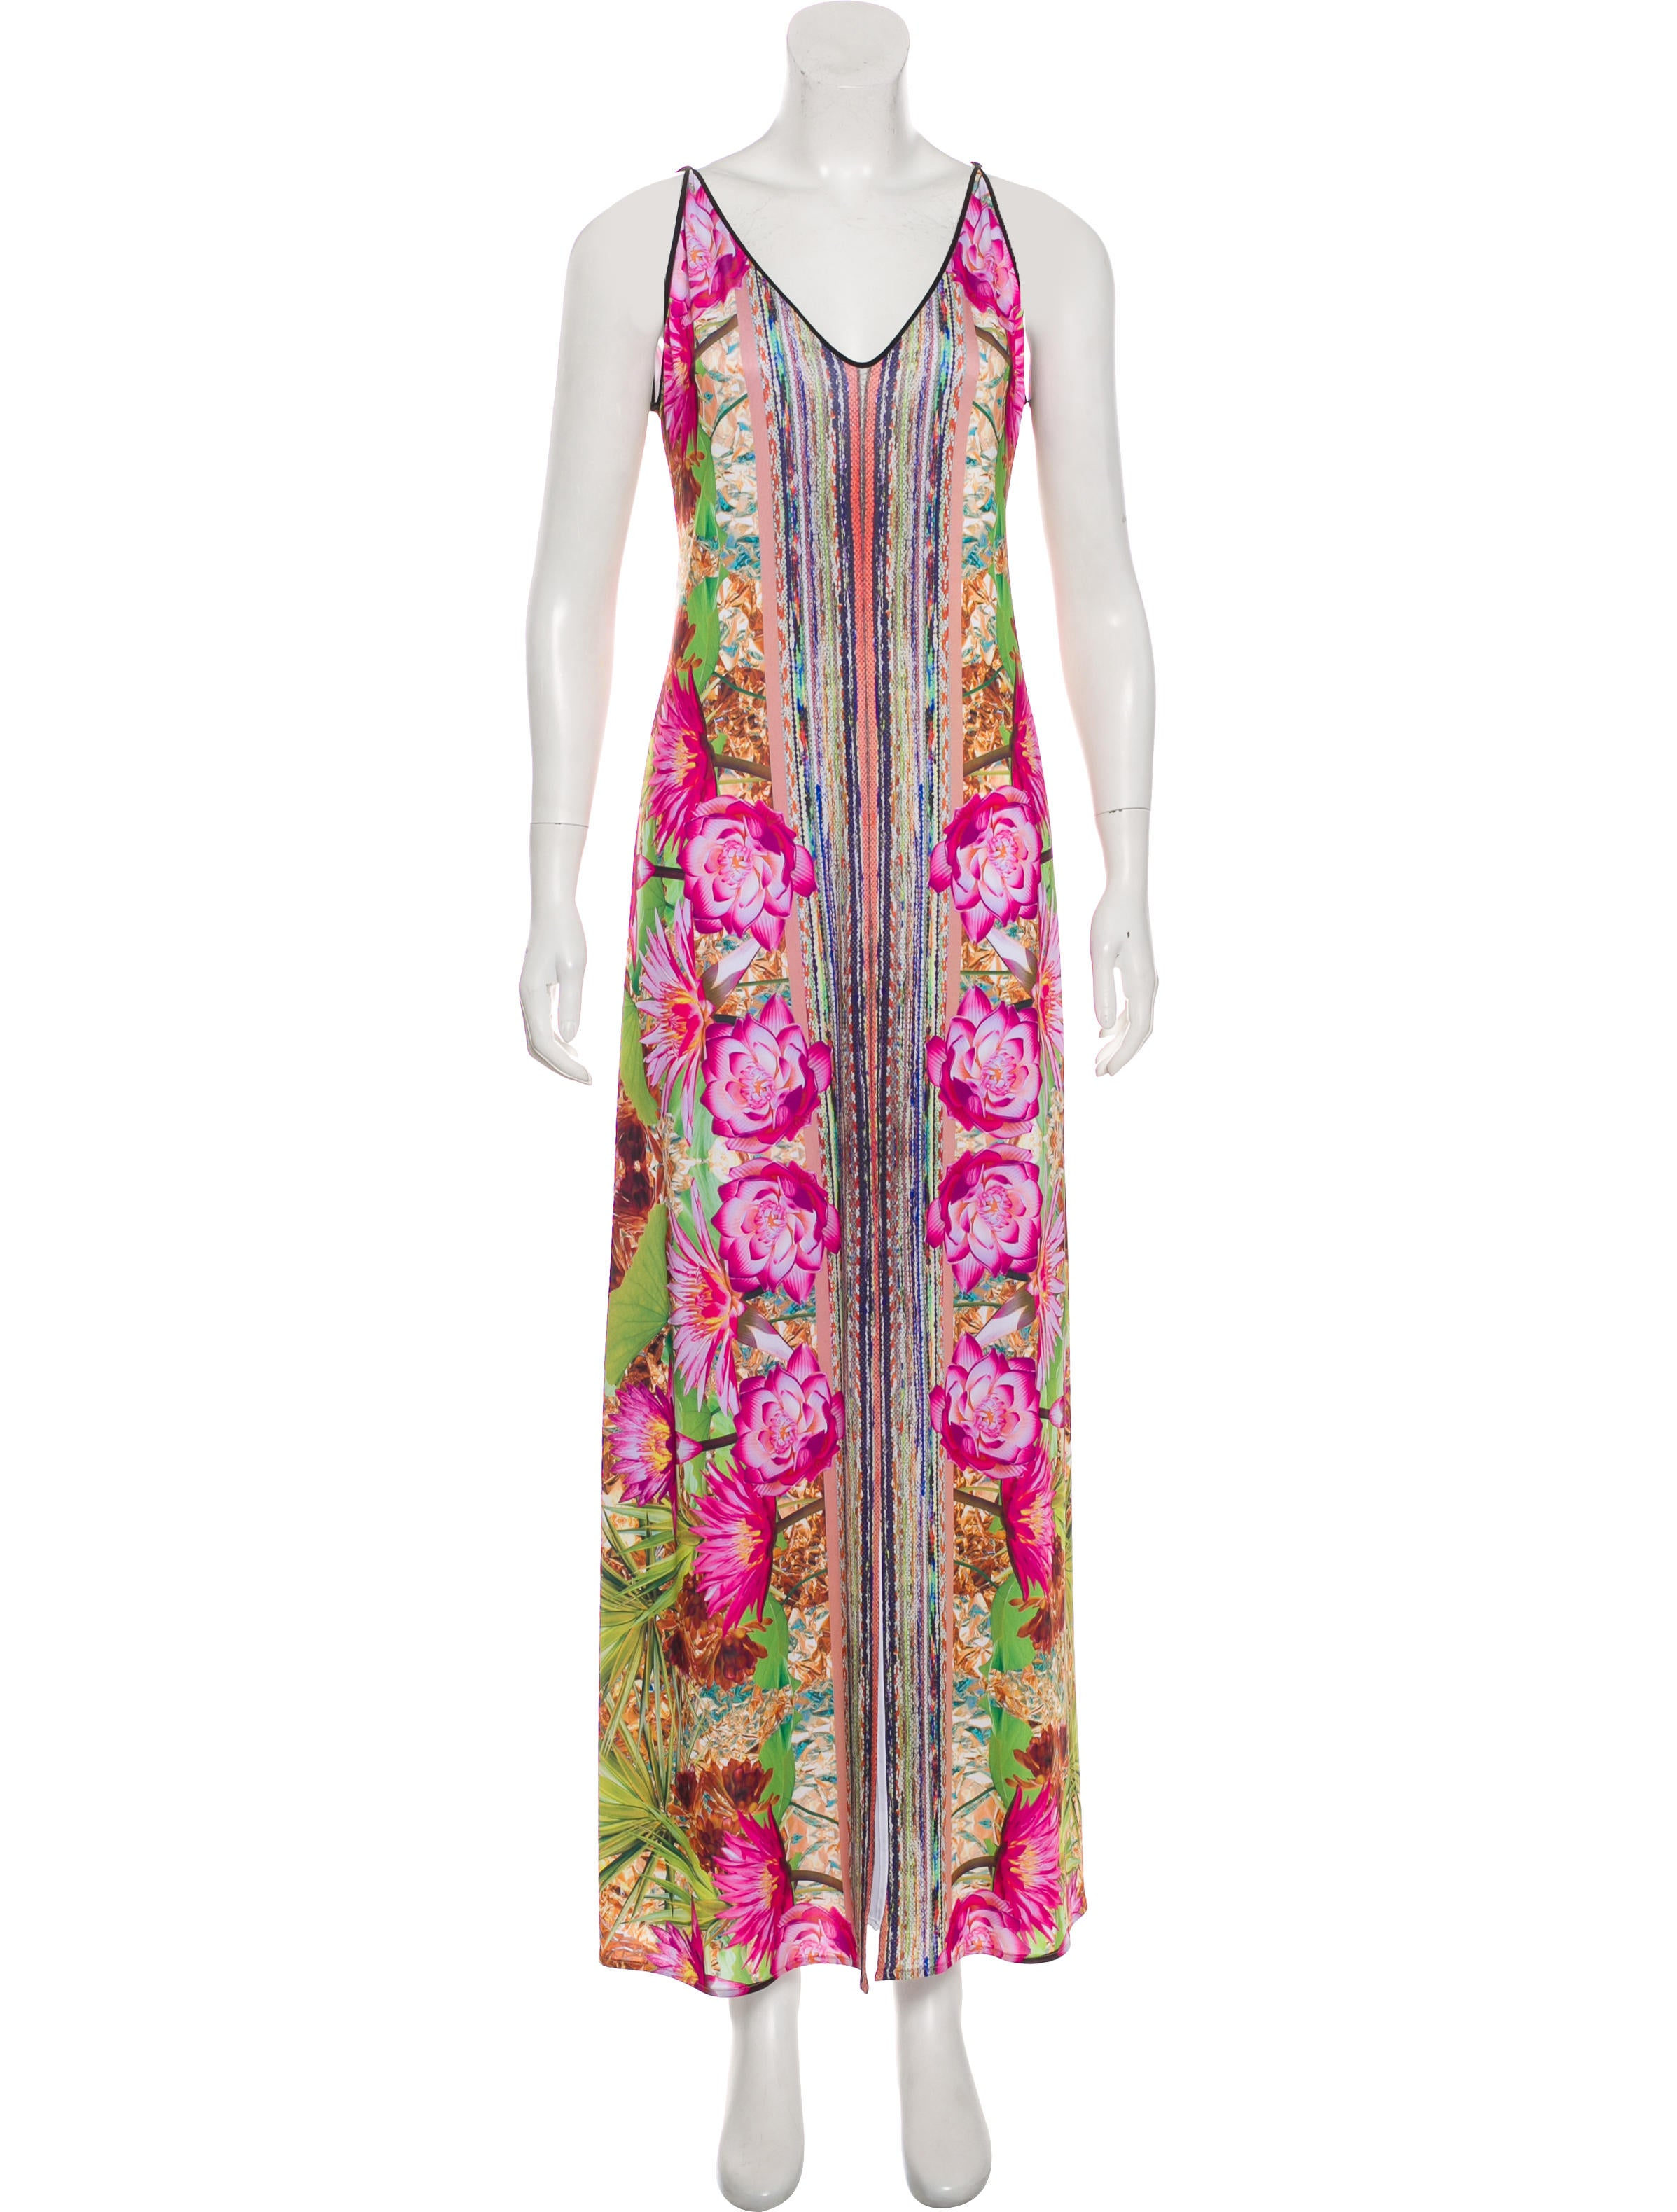 Clover Canyon Printed Maxi Dress - Clothing -           WCL28724 | The RealReal